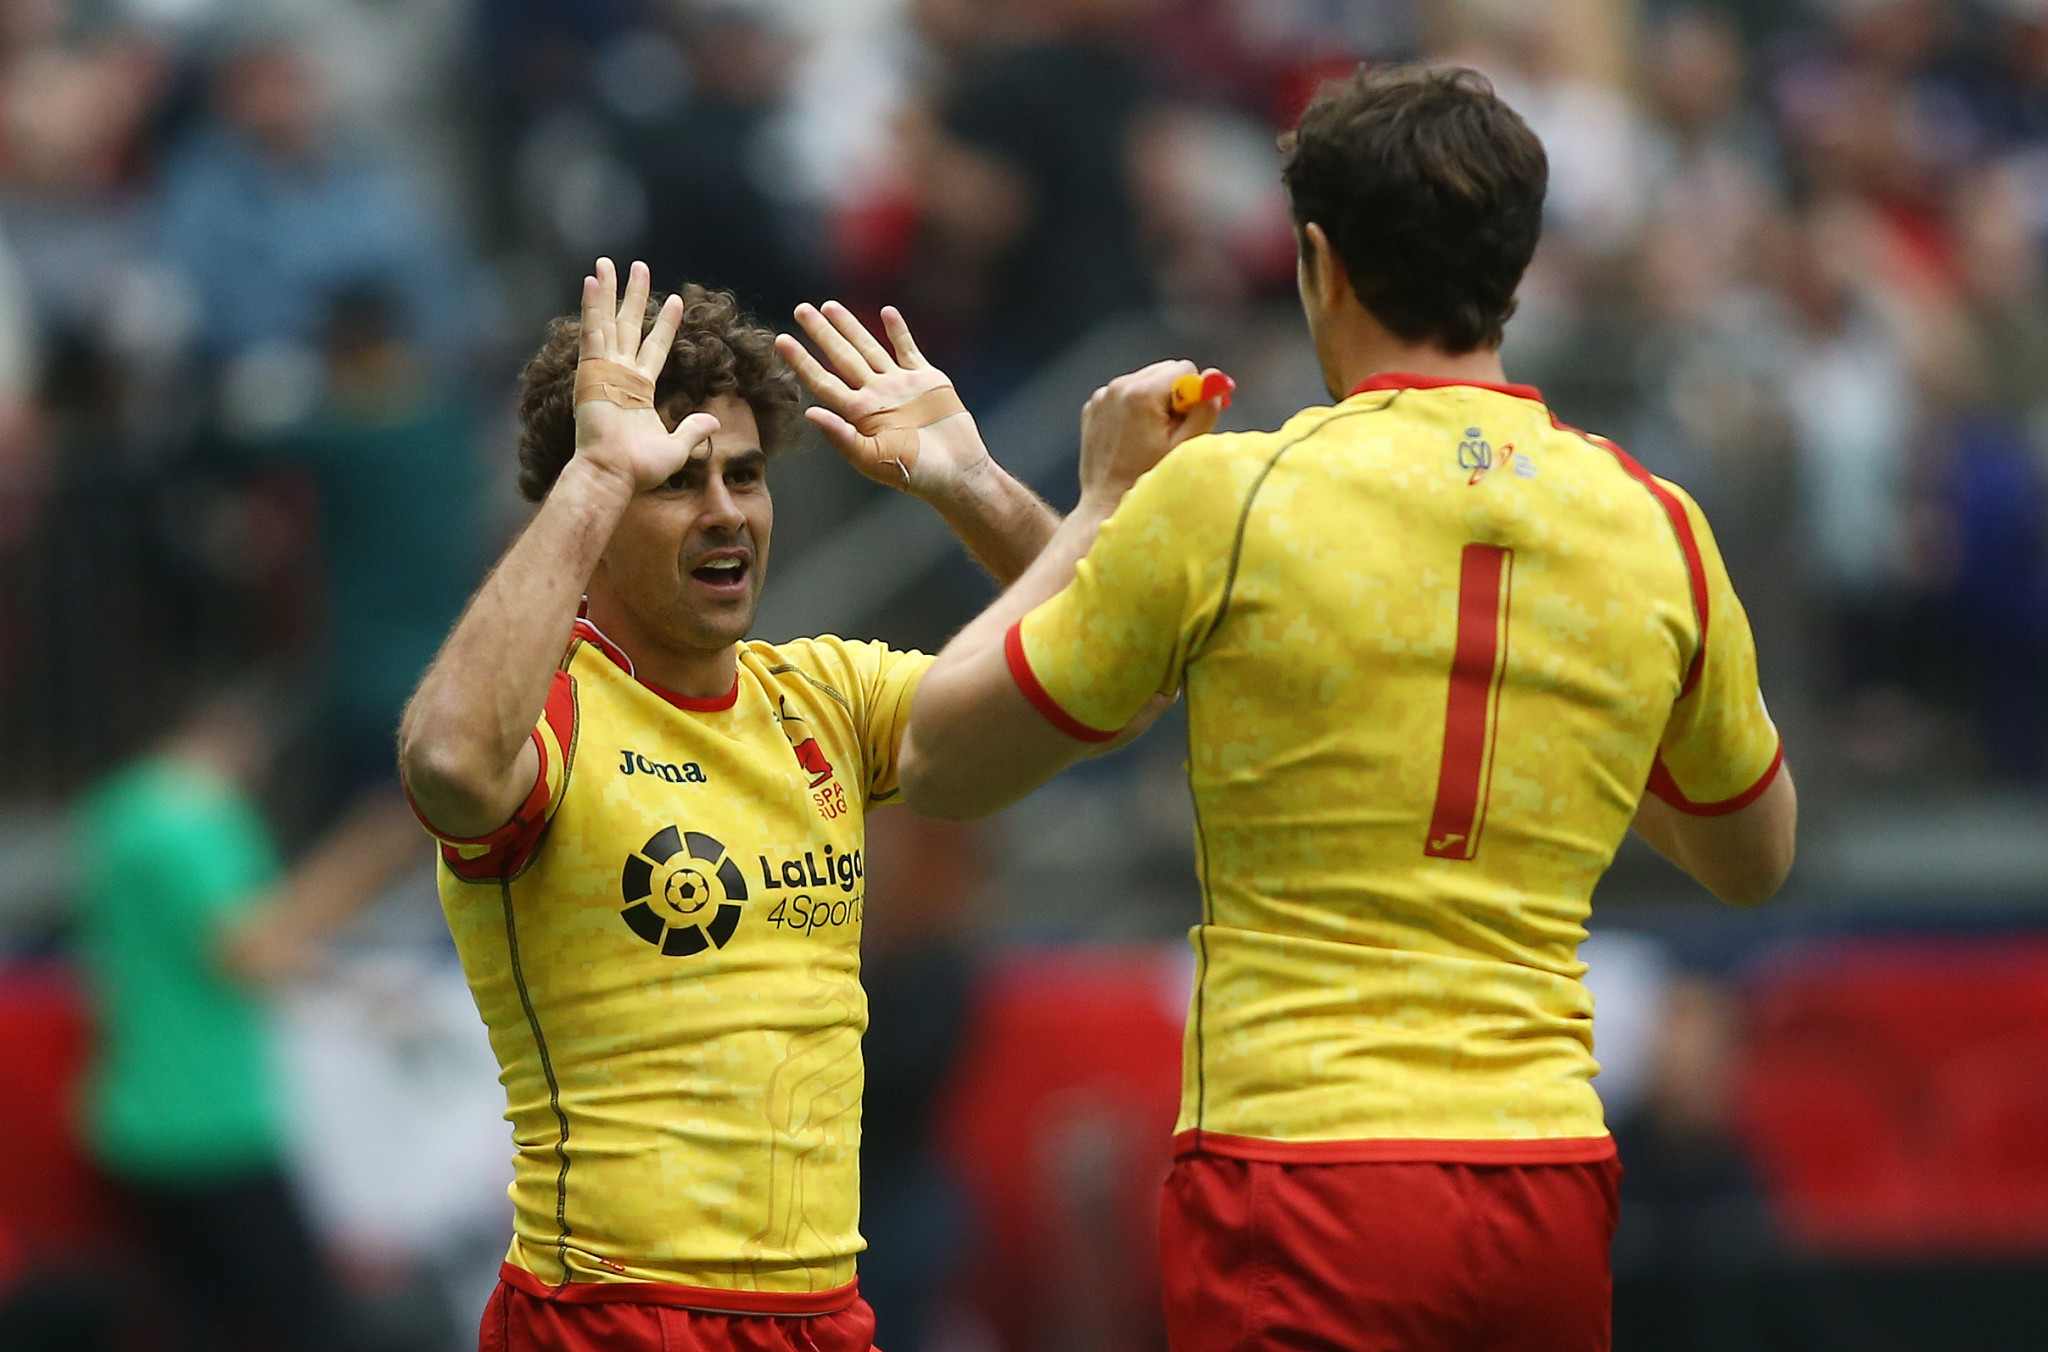 Spain pulled off a shock win over New Zealand in Vancouver but still finished bottom of their pool ©Getty Images